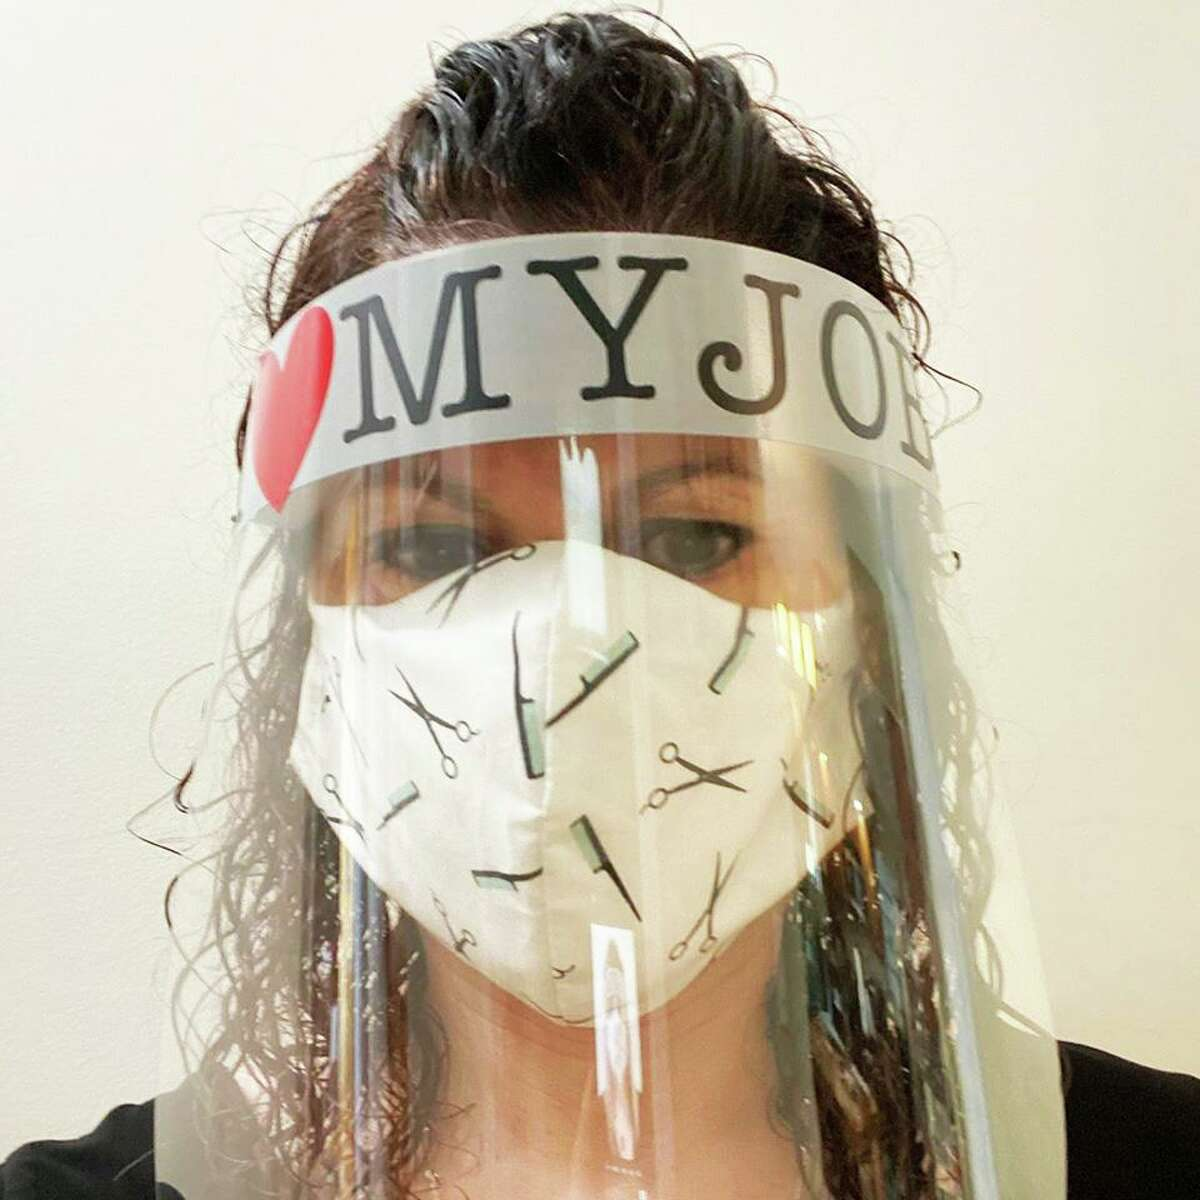 Jessica Sassu, owner of Jessica's Color Room in Middletown, spent thousands of dollars on face shields, masks, gloves and other protective equipment, including air sanitizers, in order to reopen during the coronavirus pandemic. She even wrote a letter to the governor urging him to reconsider his decision.